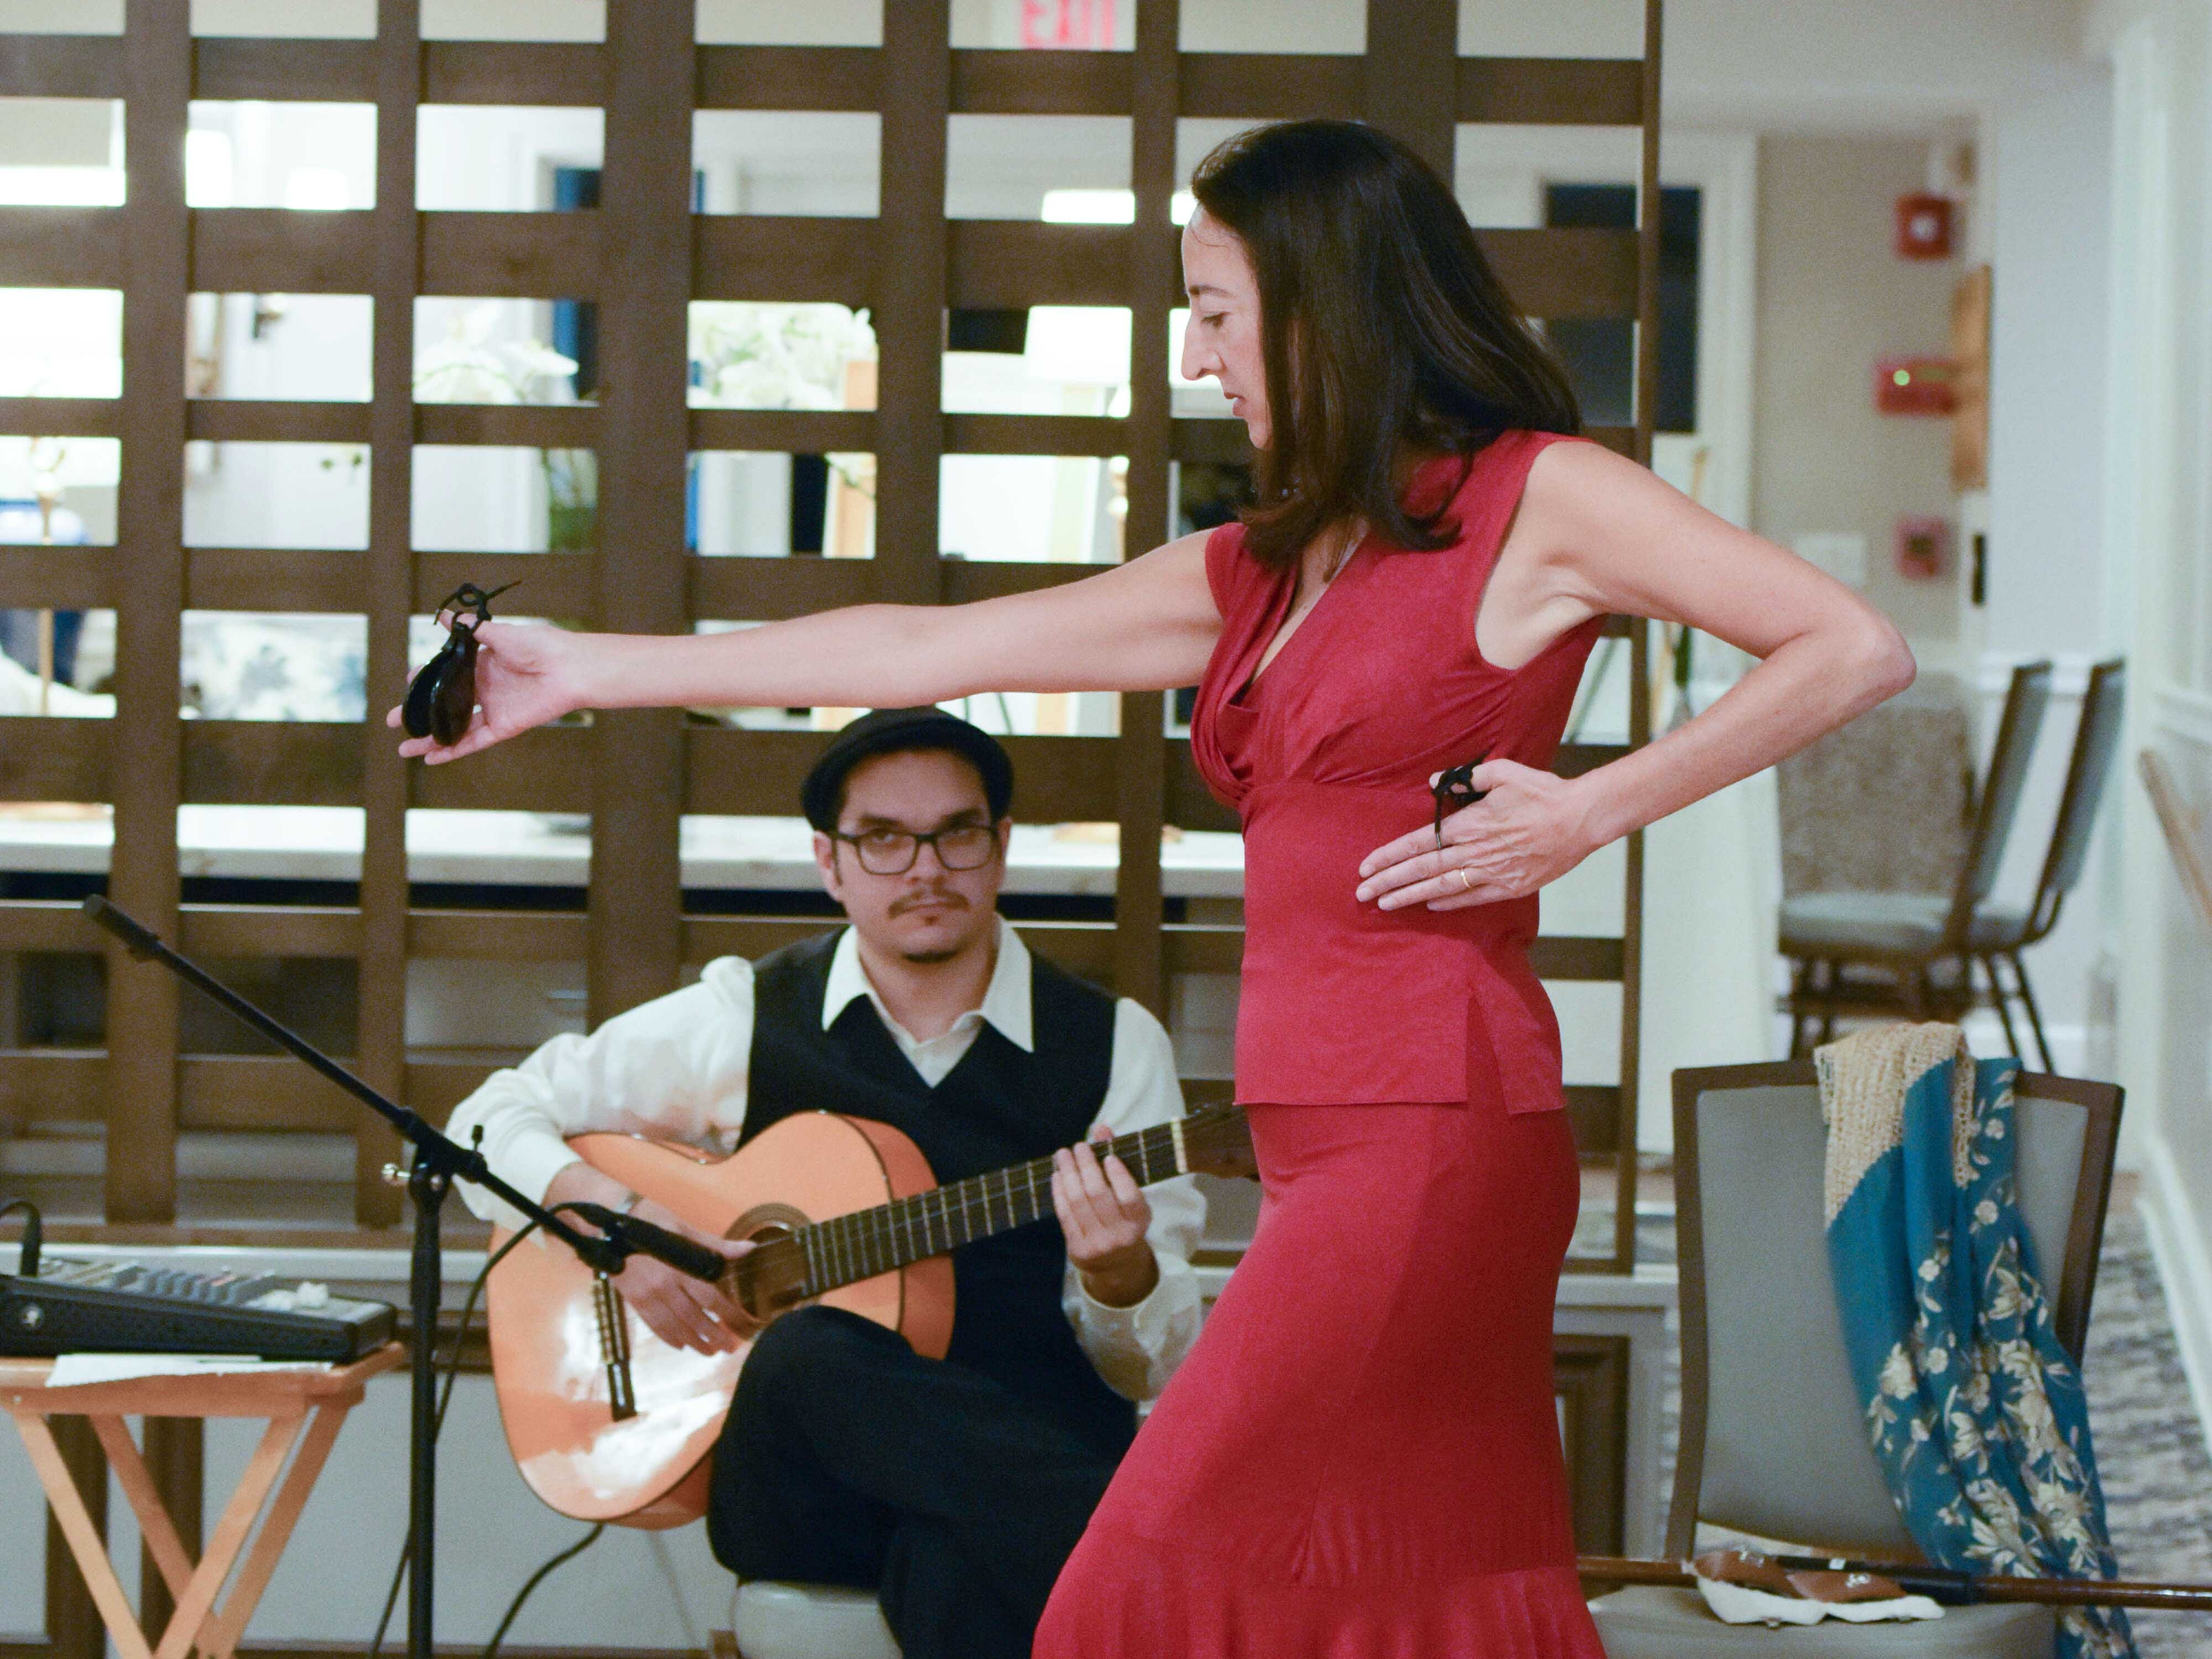 Flamenco guitarist Guillermo Gonzales accompanies dancer Eva Conti at the Stuart Friends of the Atlantic Classical Orchestra's Meet the Artist Dinner at the Stuart Yacht & Country Club.